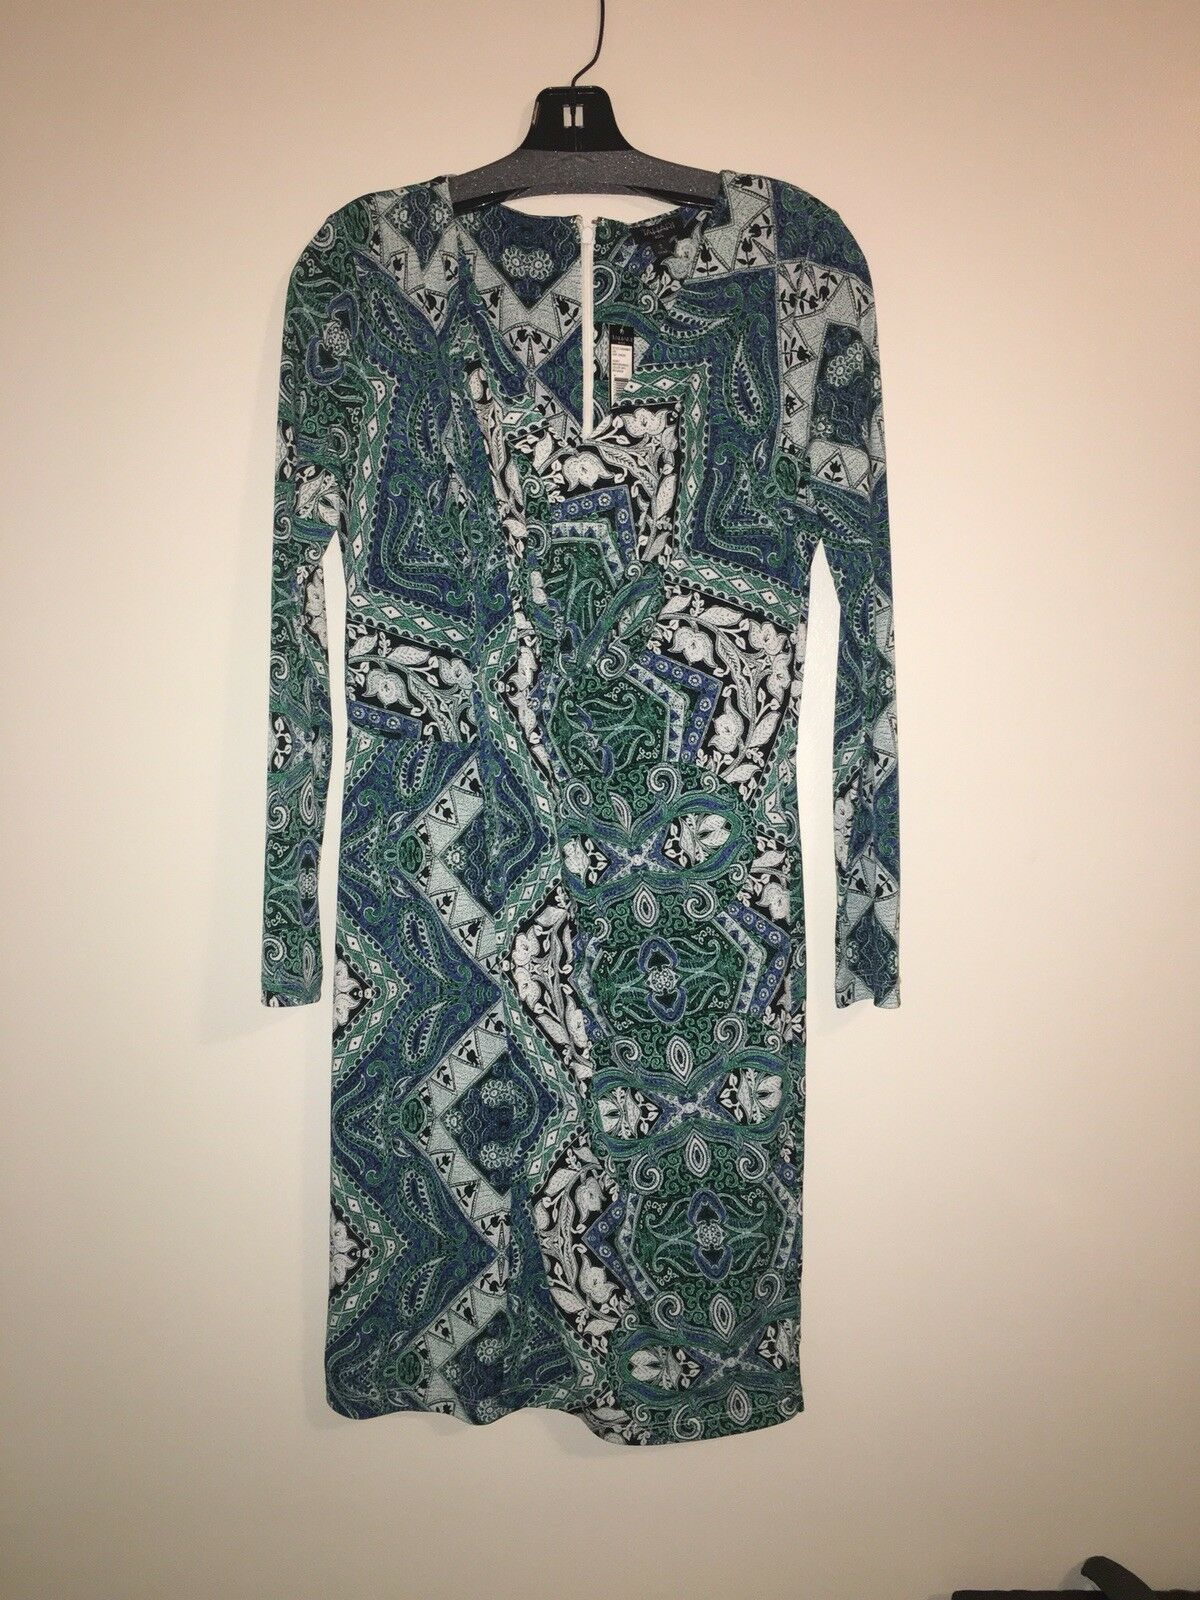 NWT- Tahari long sleeve front ruched dress, Größe s